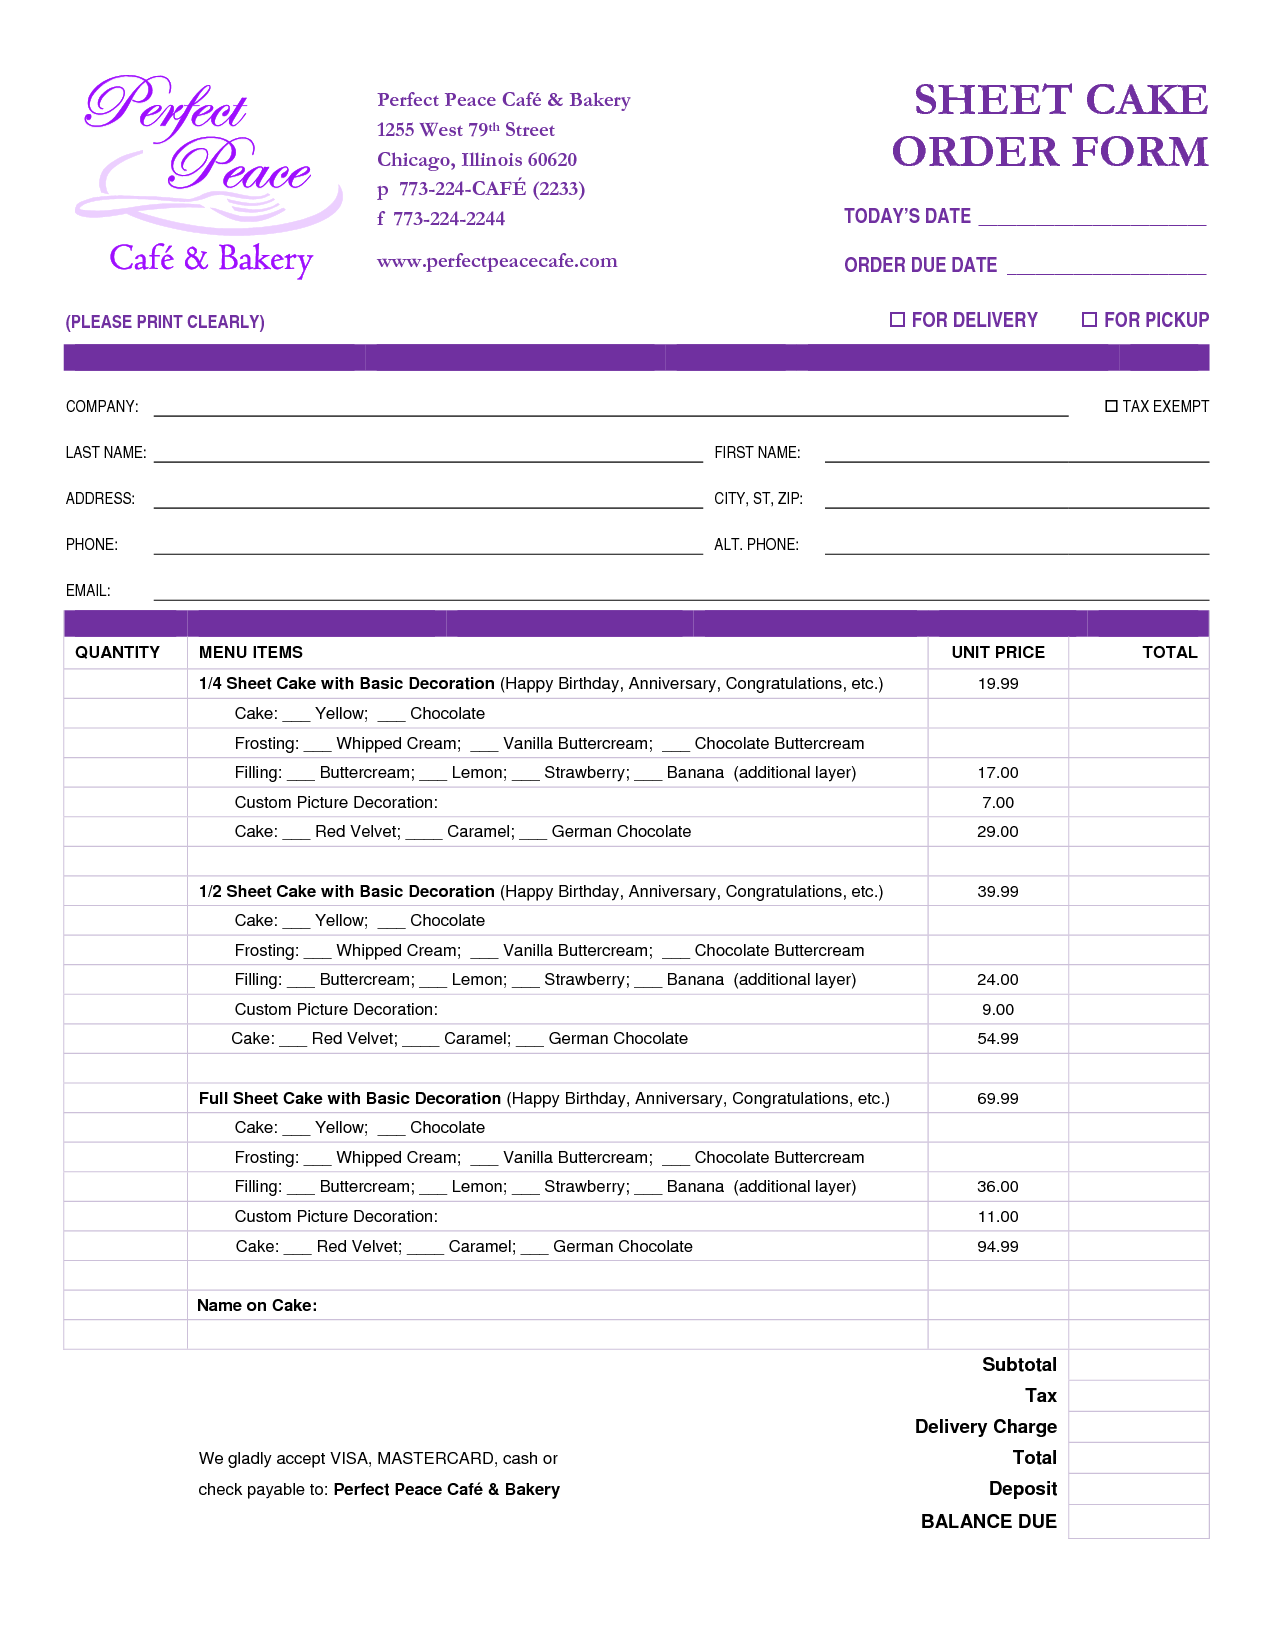 Cake Order Form Template Free Download   Google Search  Order Forms Templates Free